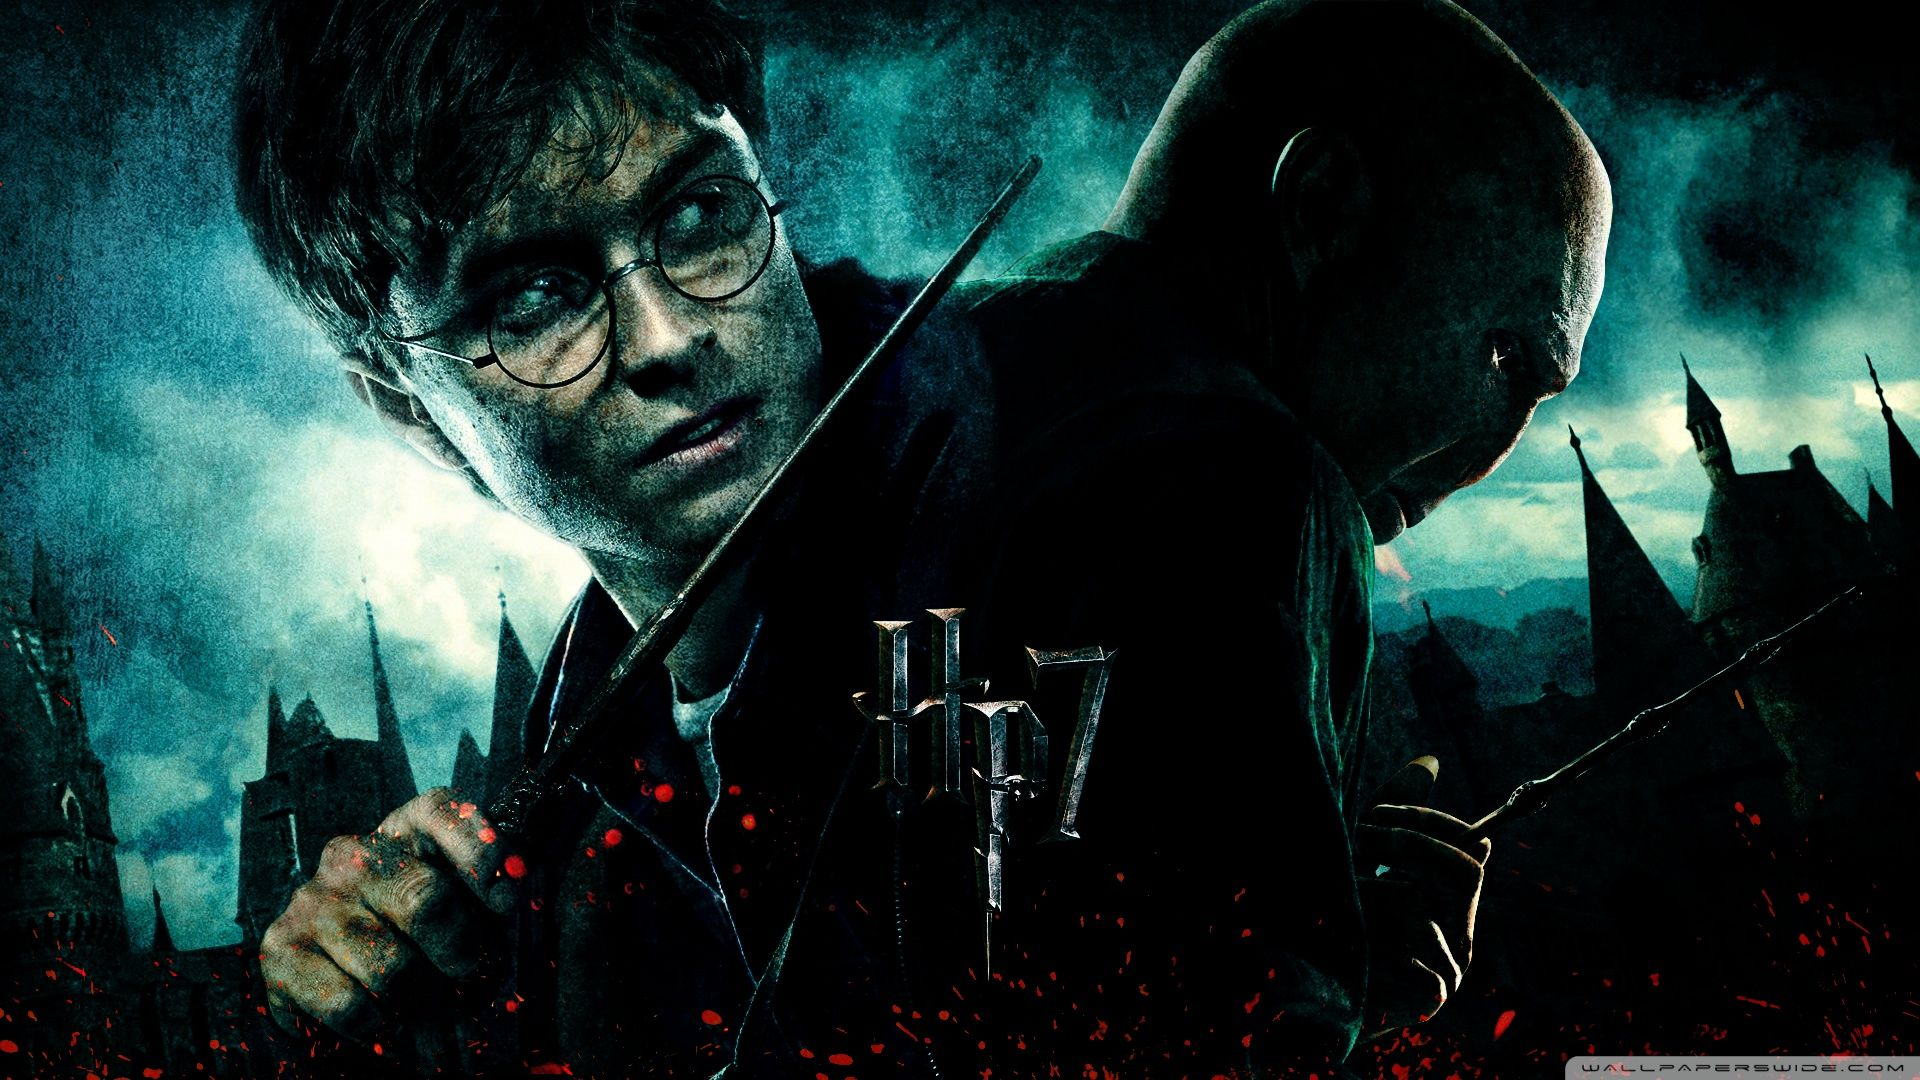 Harry potter wallpaper for android click wallpapers cinema harry potter wallpaper for android click wallpapers voltagebd Image collections